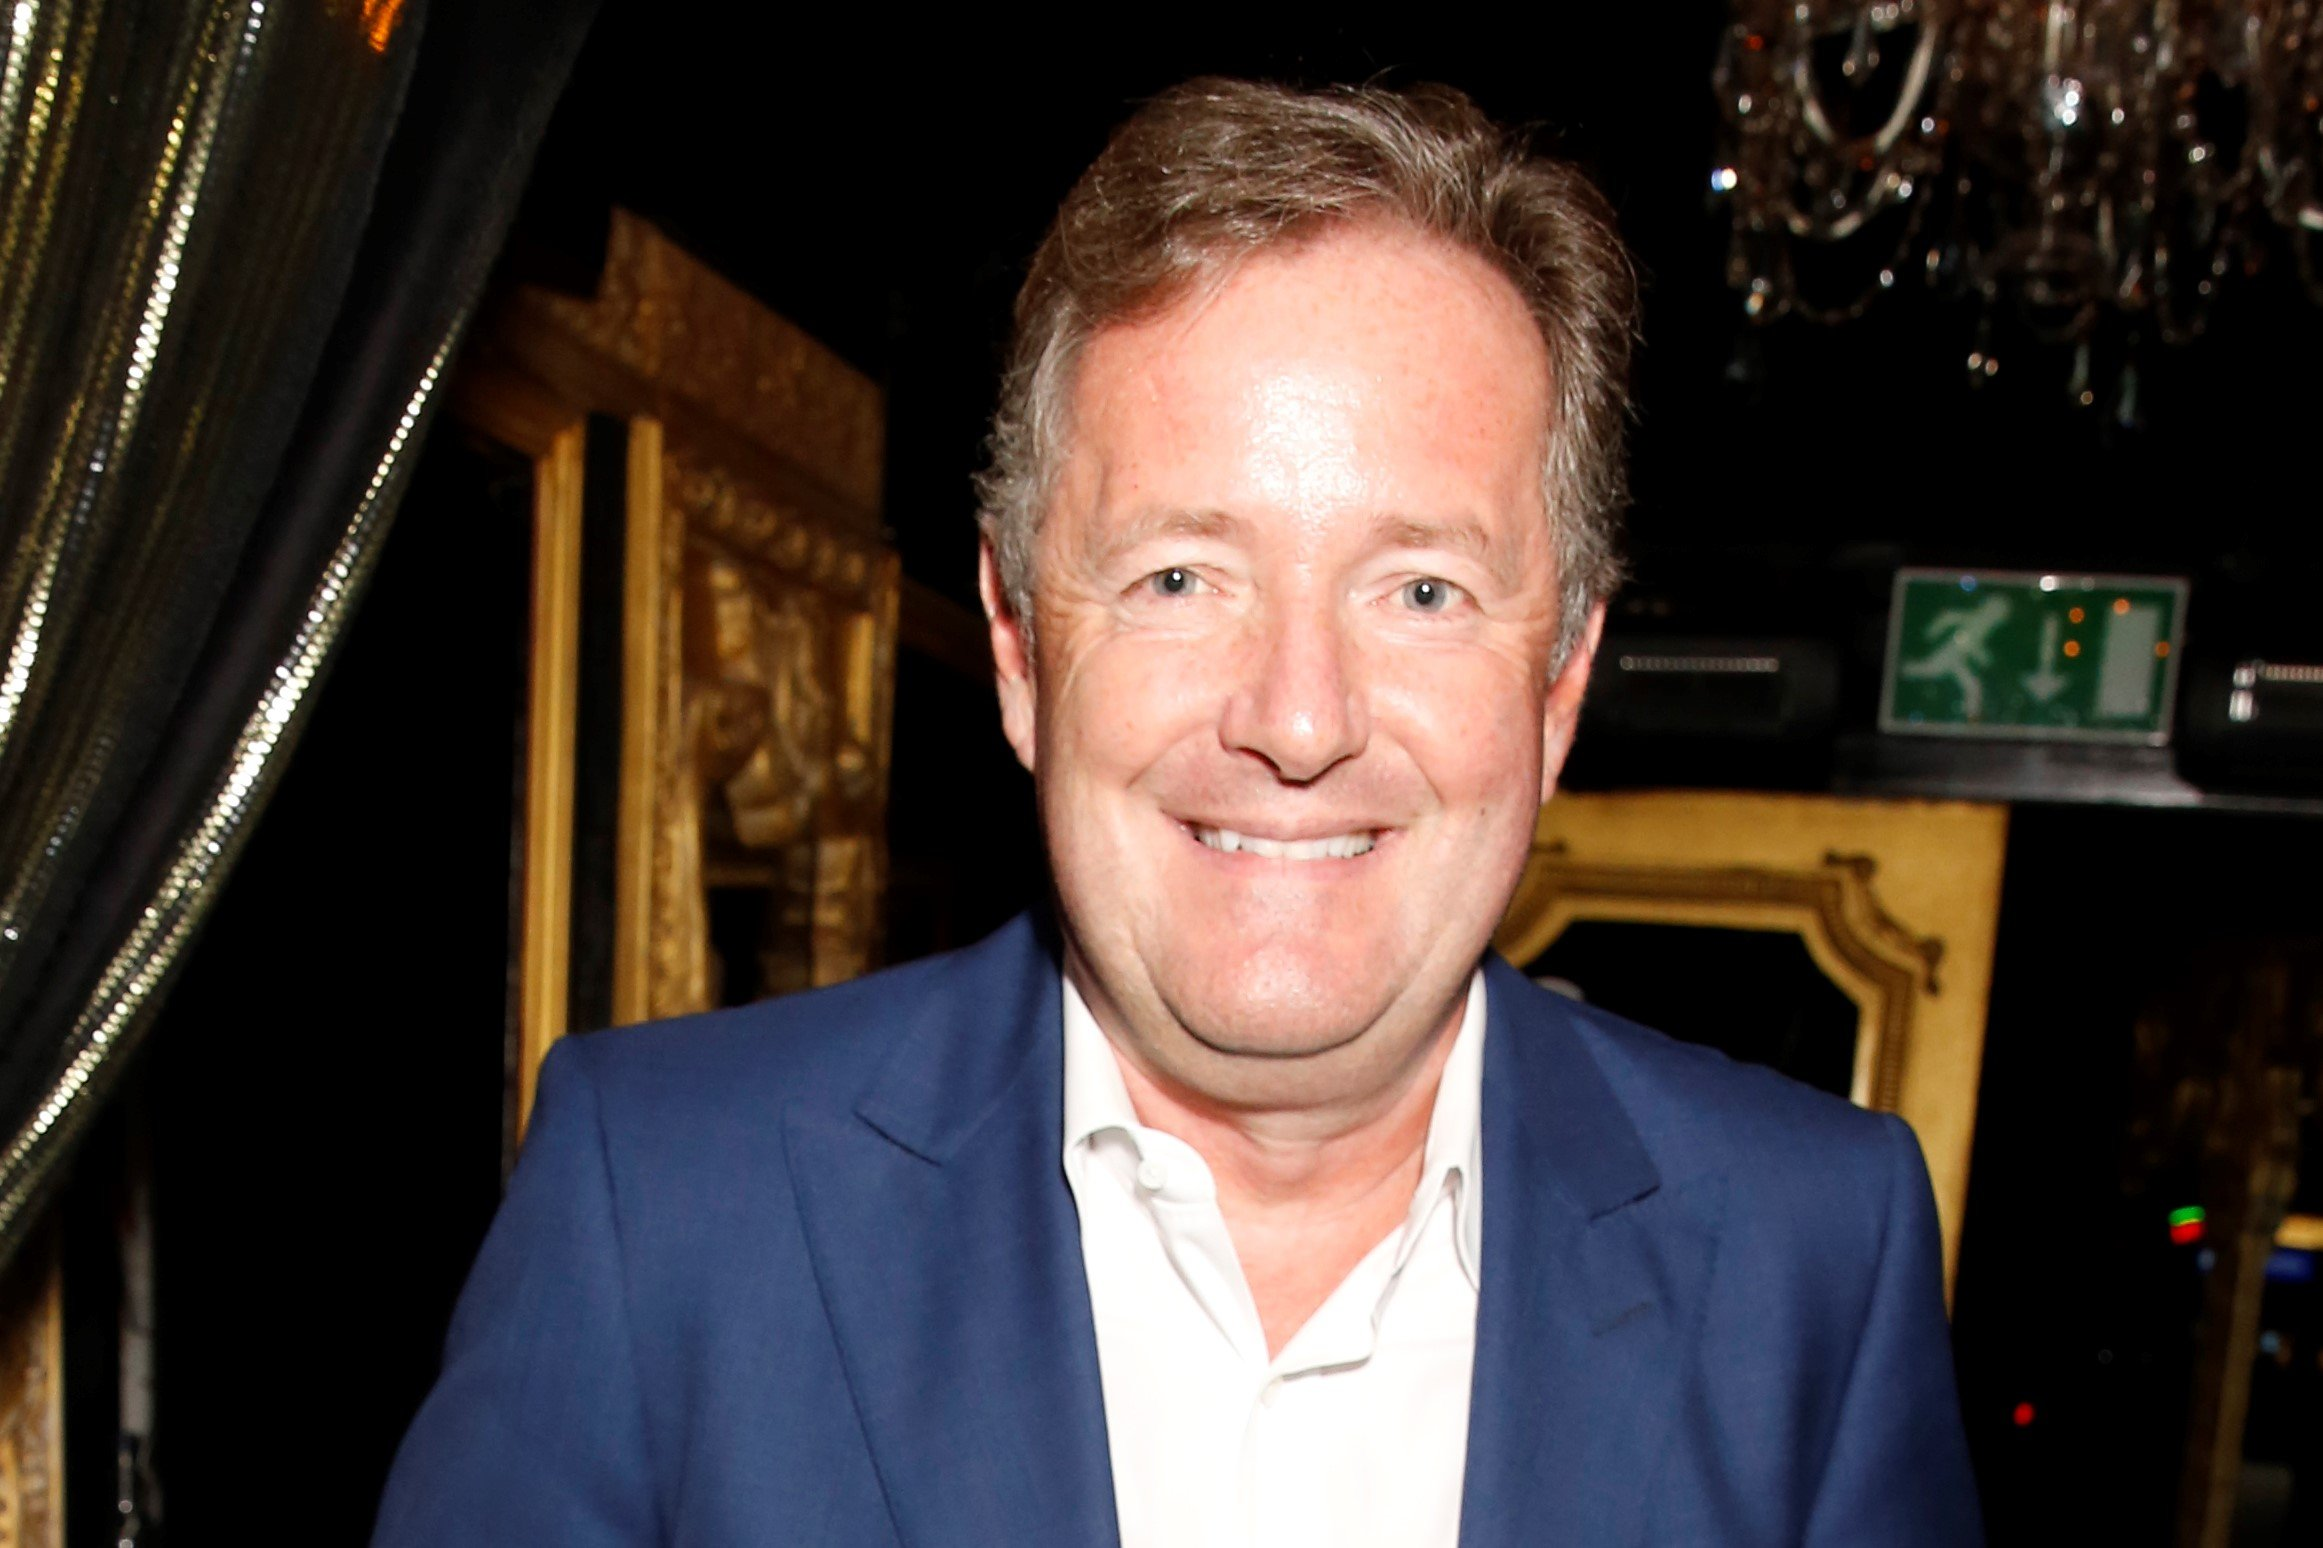 Police called after Piers Morgan receives vile threat on Twitter